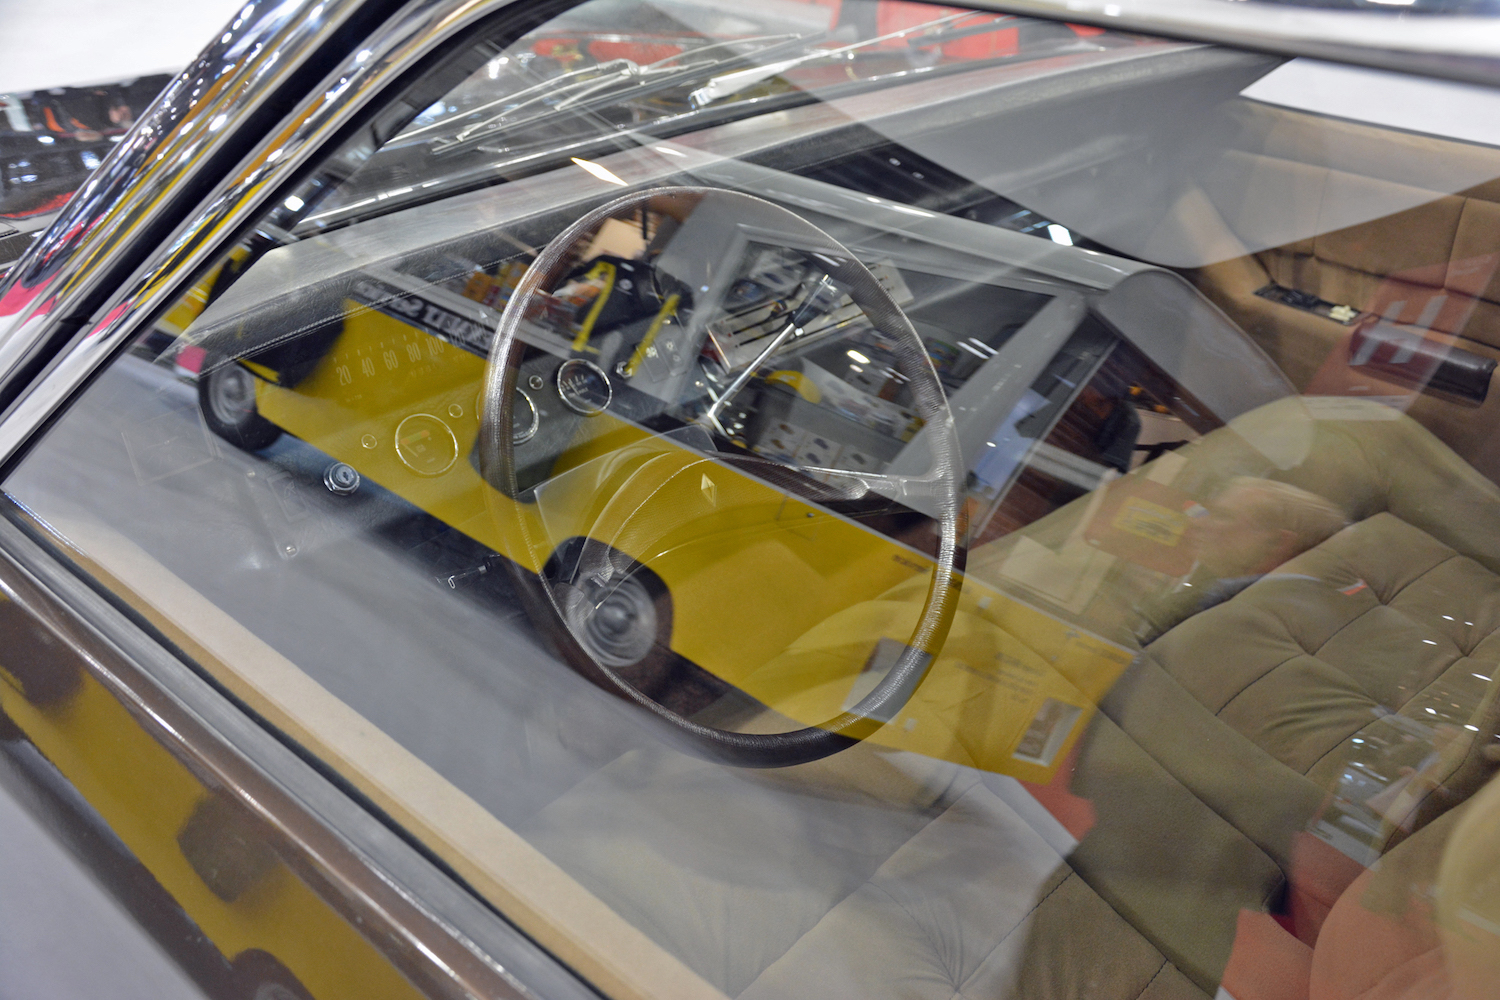 1967 Renault Project H interior view through window